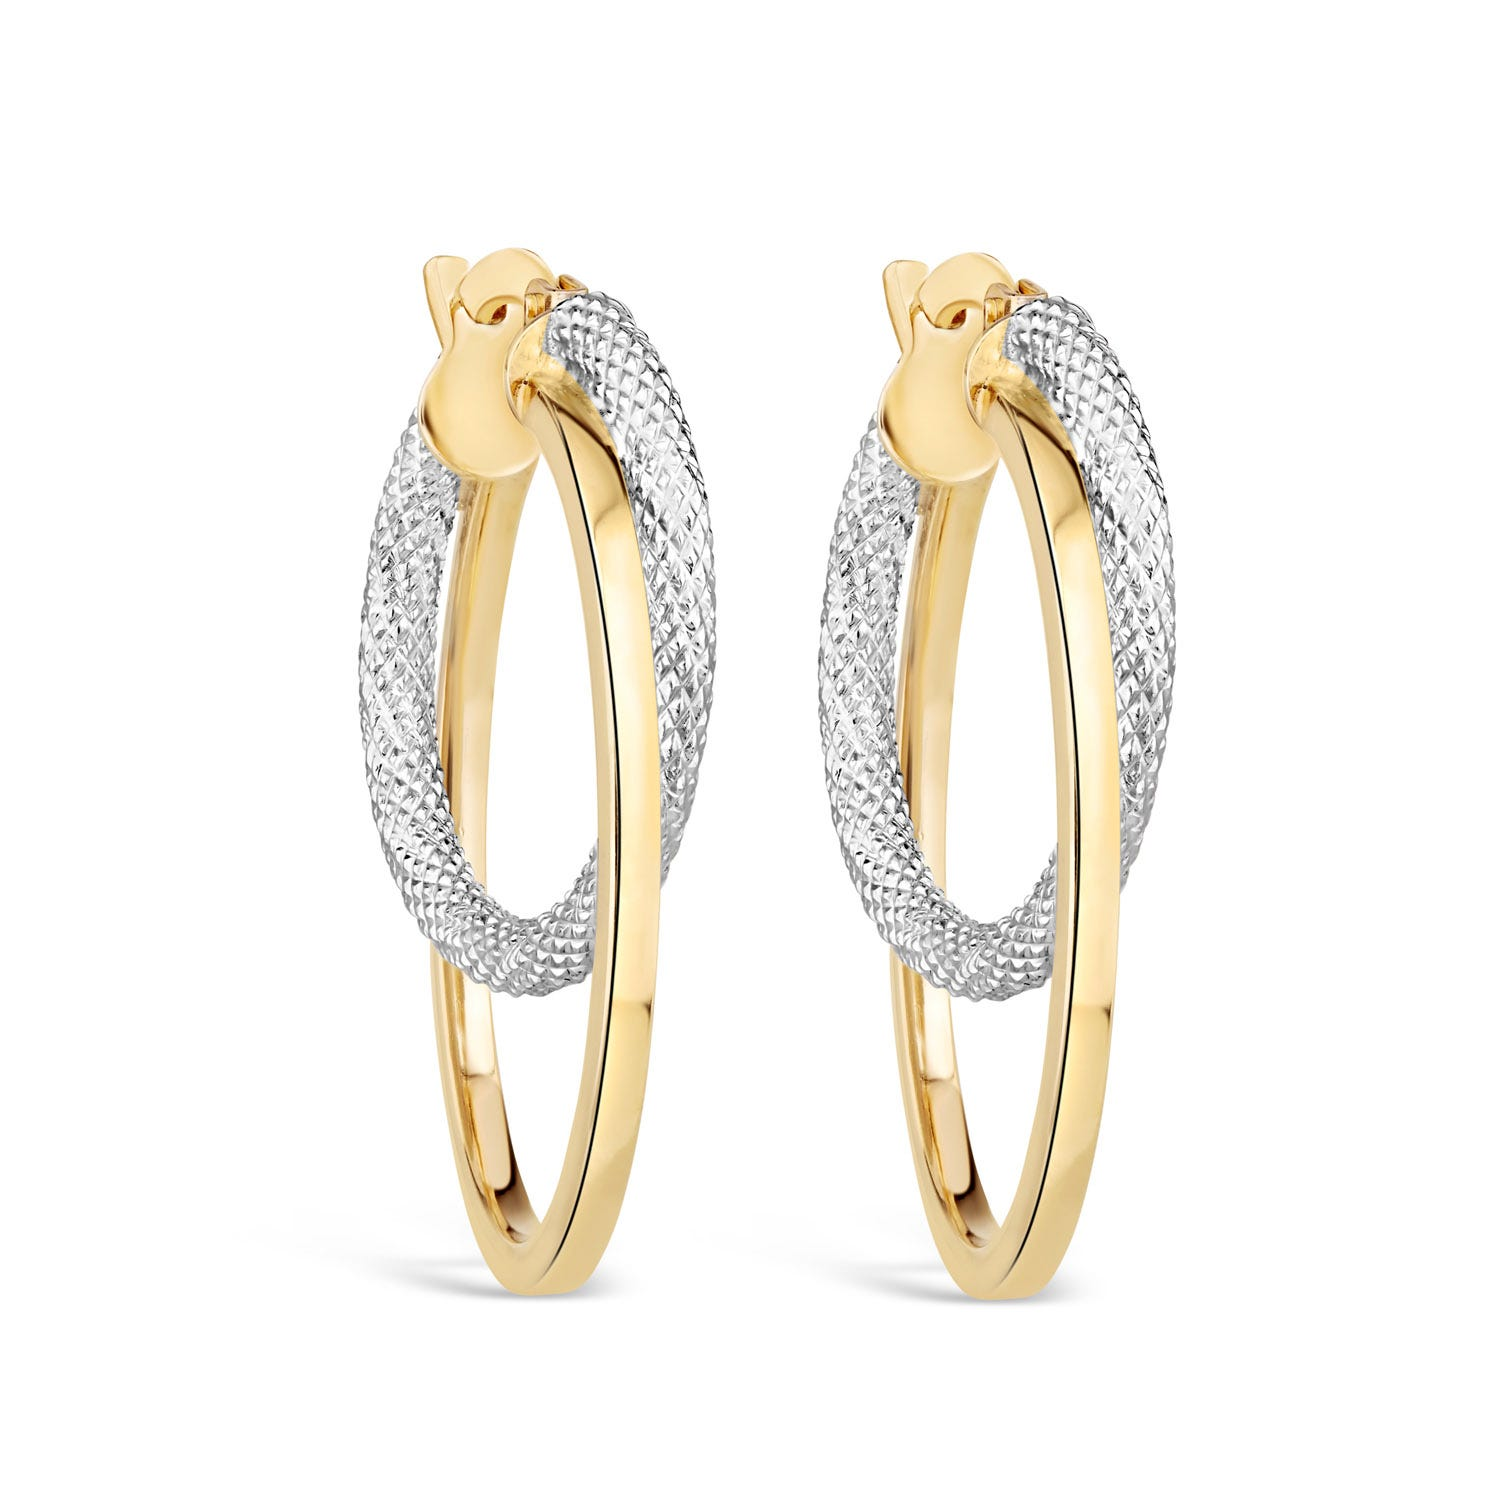 9ct Two-Tone Gold Twist Double Hoop Earrings